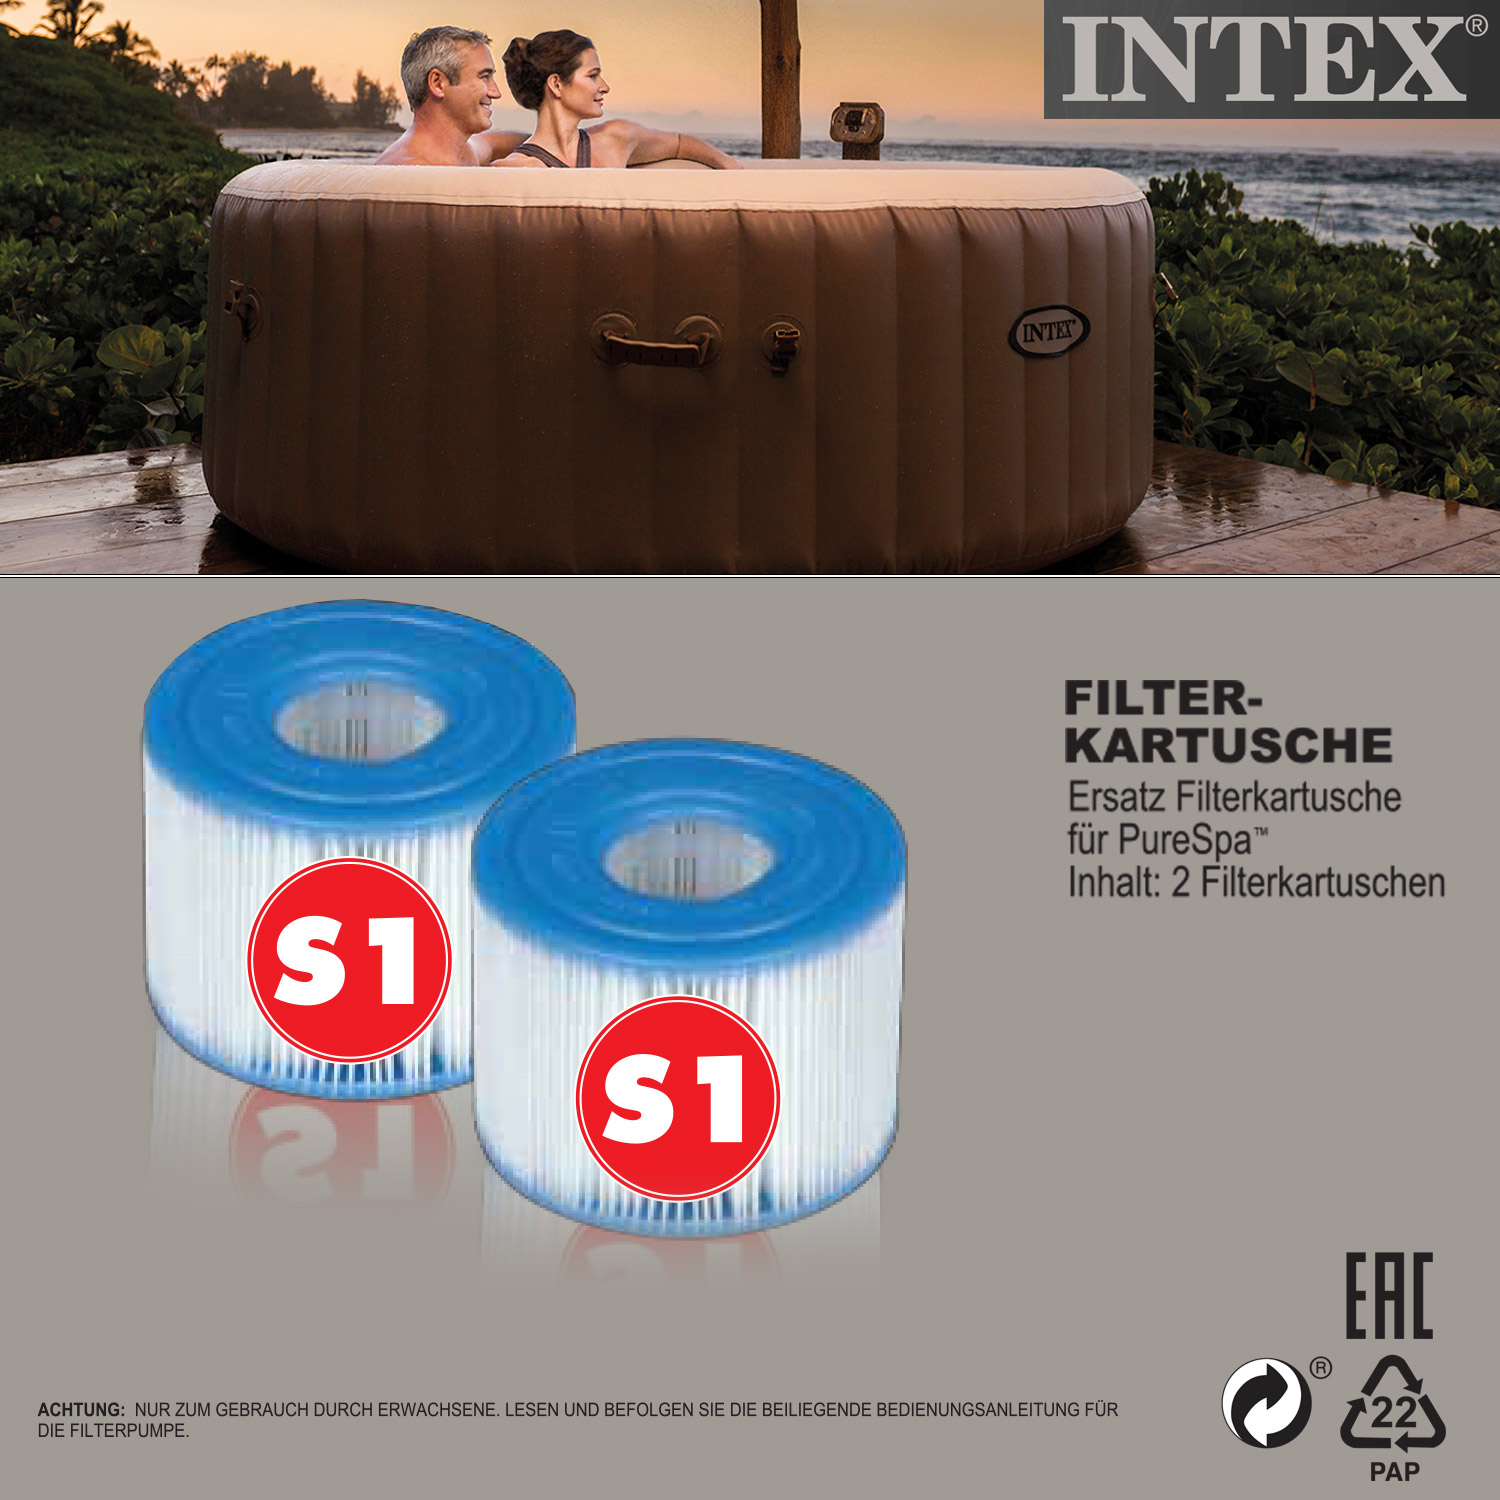 2 intex 29001 pool filter kartuschen ersatzfilter - Pool filter reinigen ...